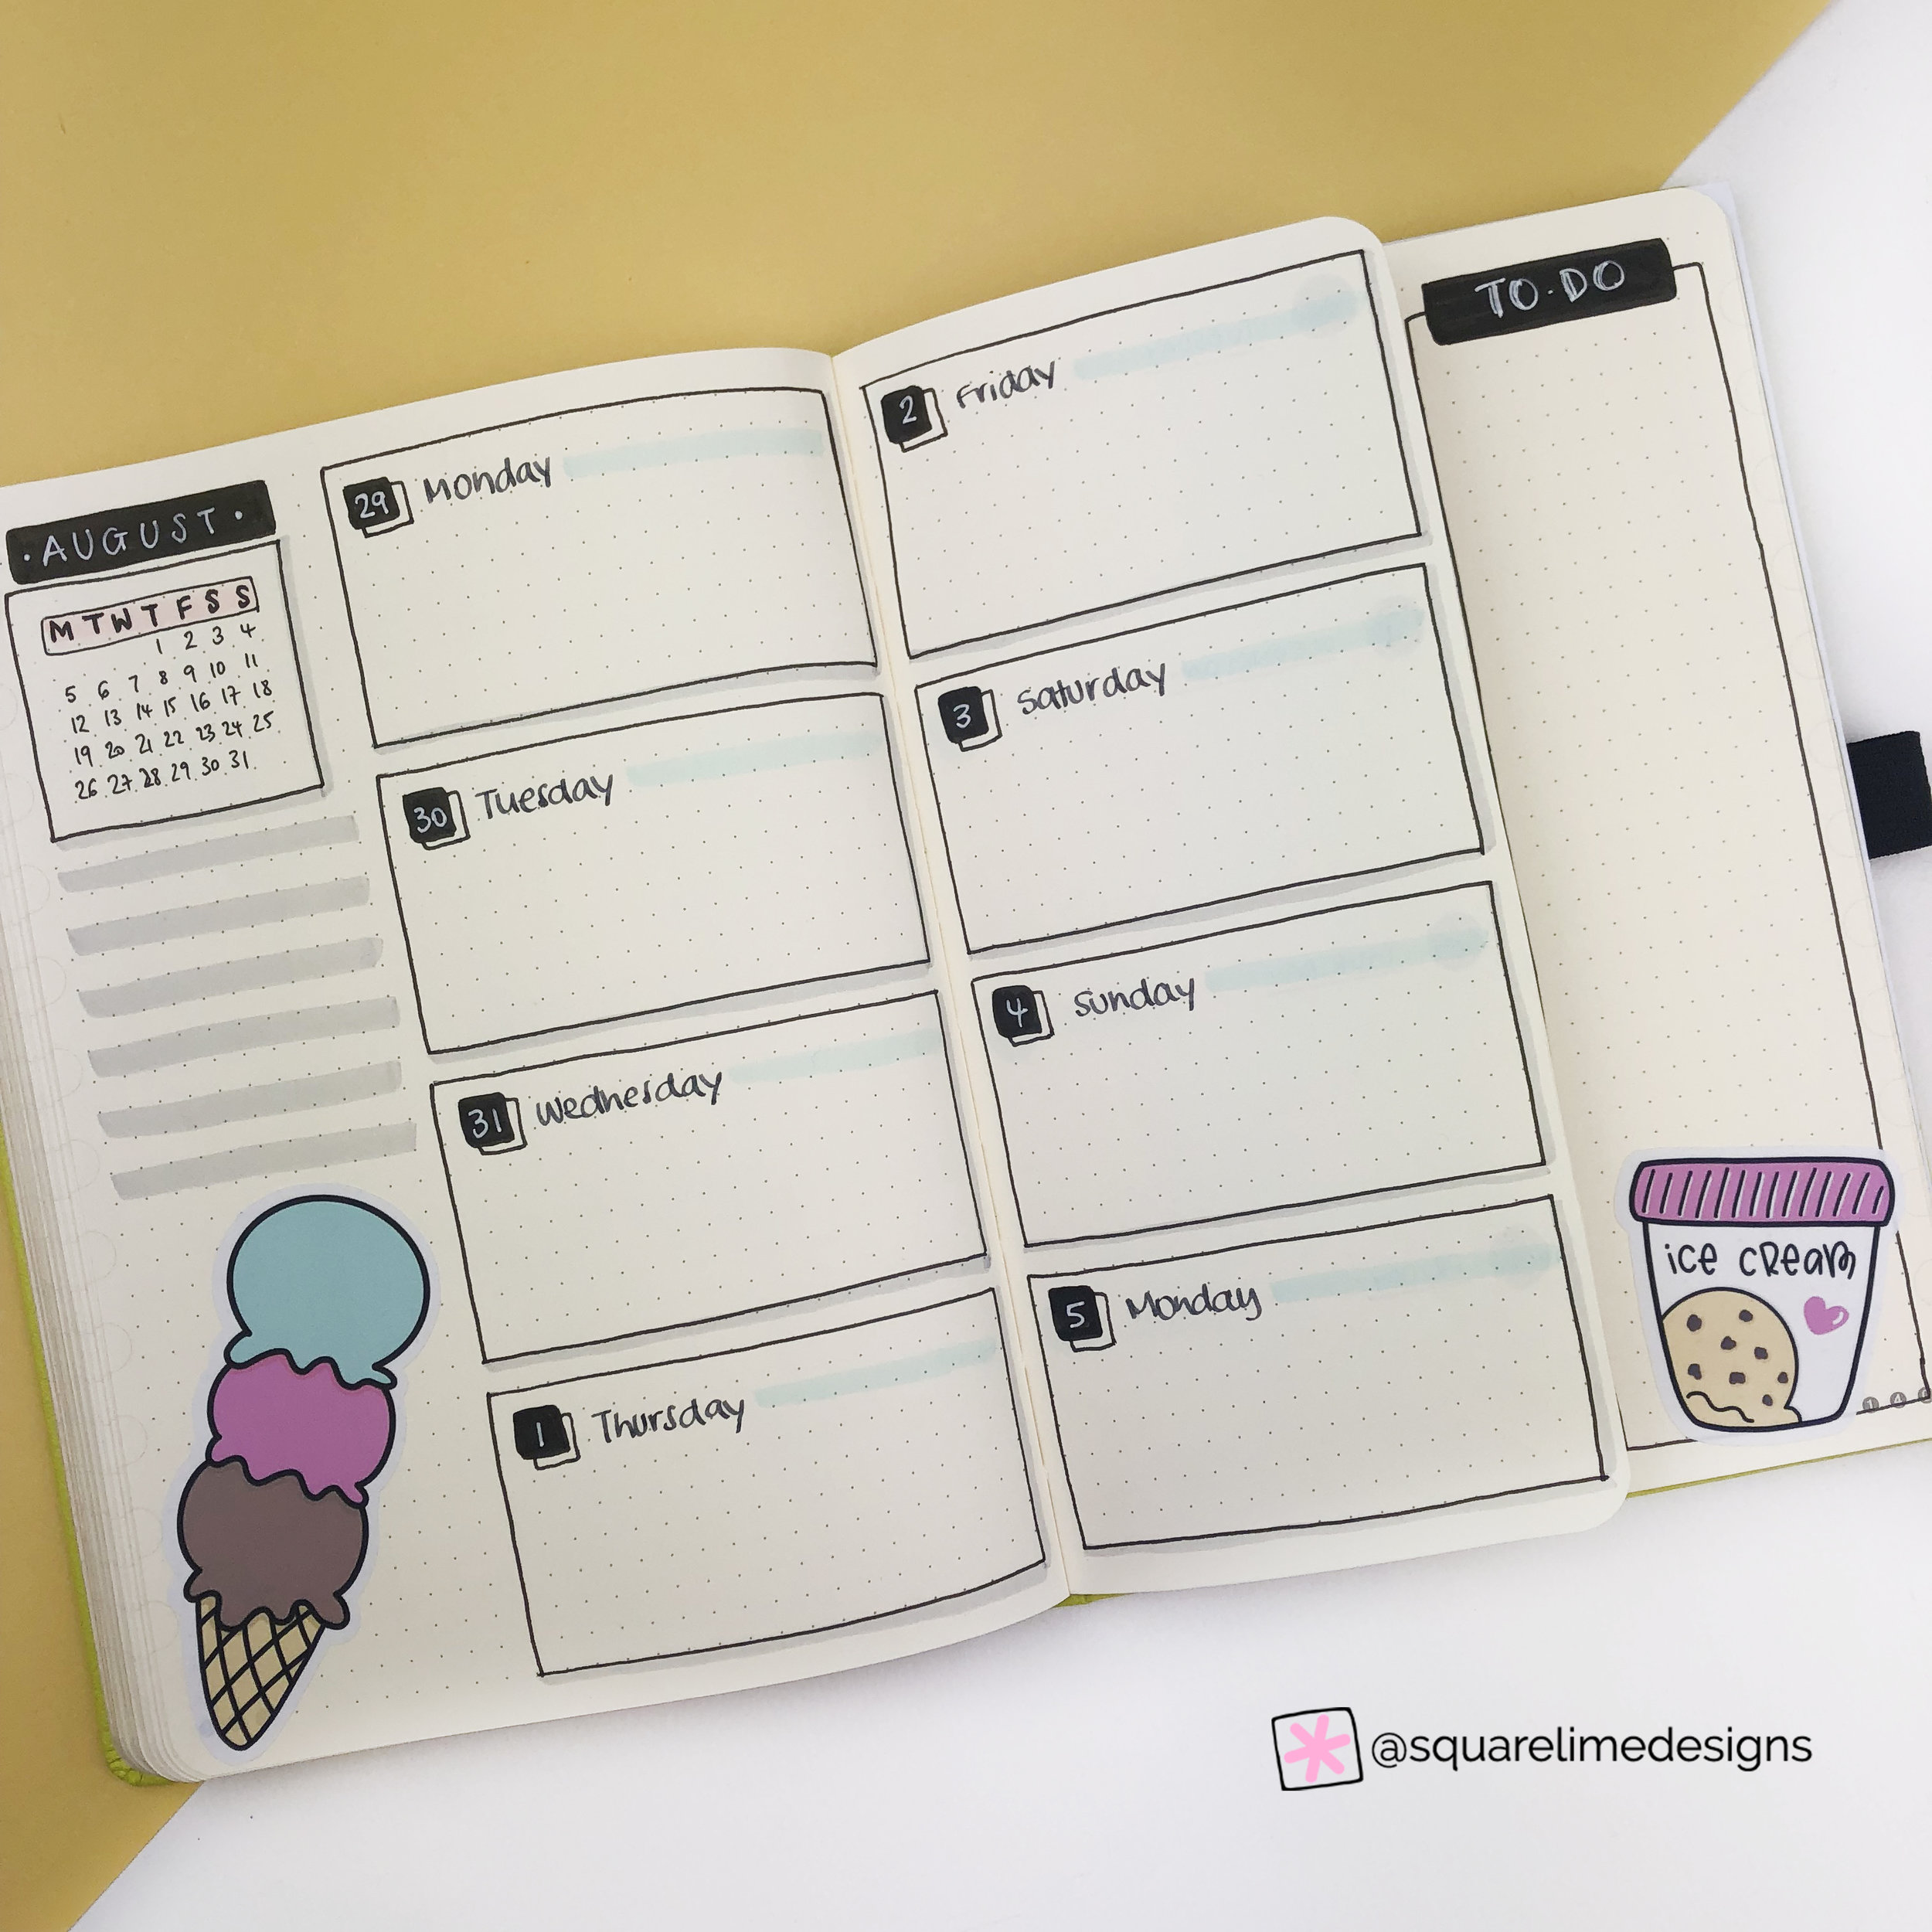 Plan With Me - Bullet Journal Monthly Setup for August 2019 - Weekly Spread 1